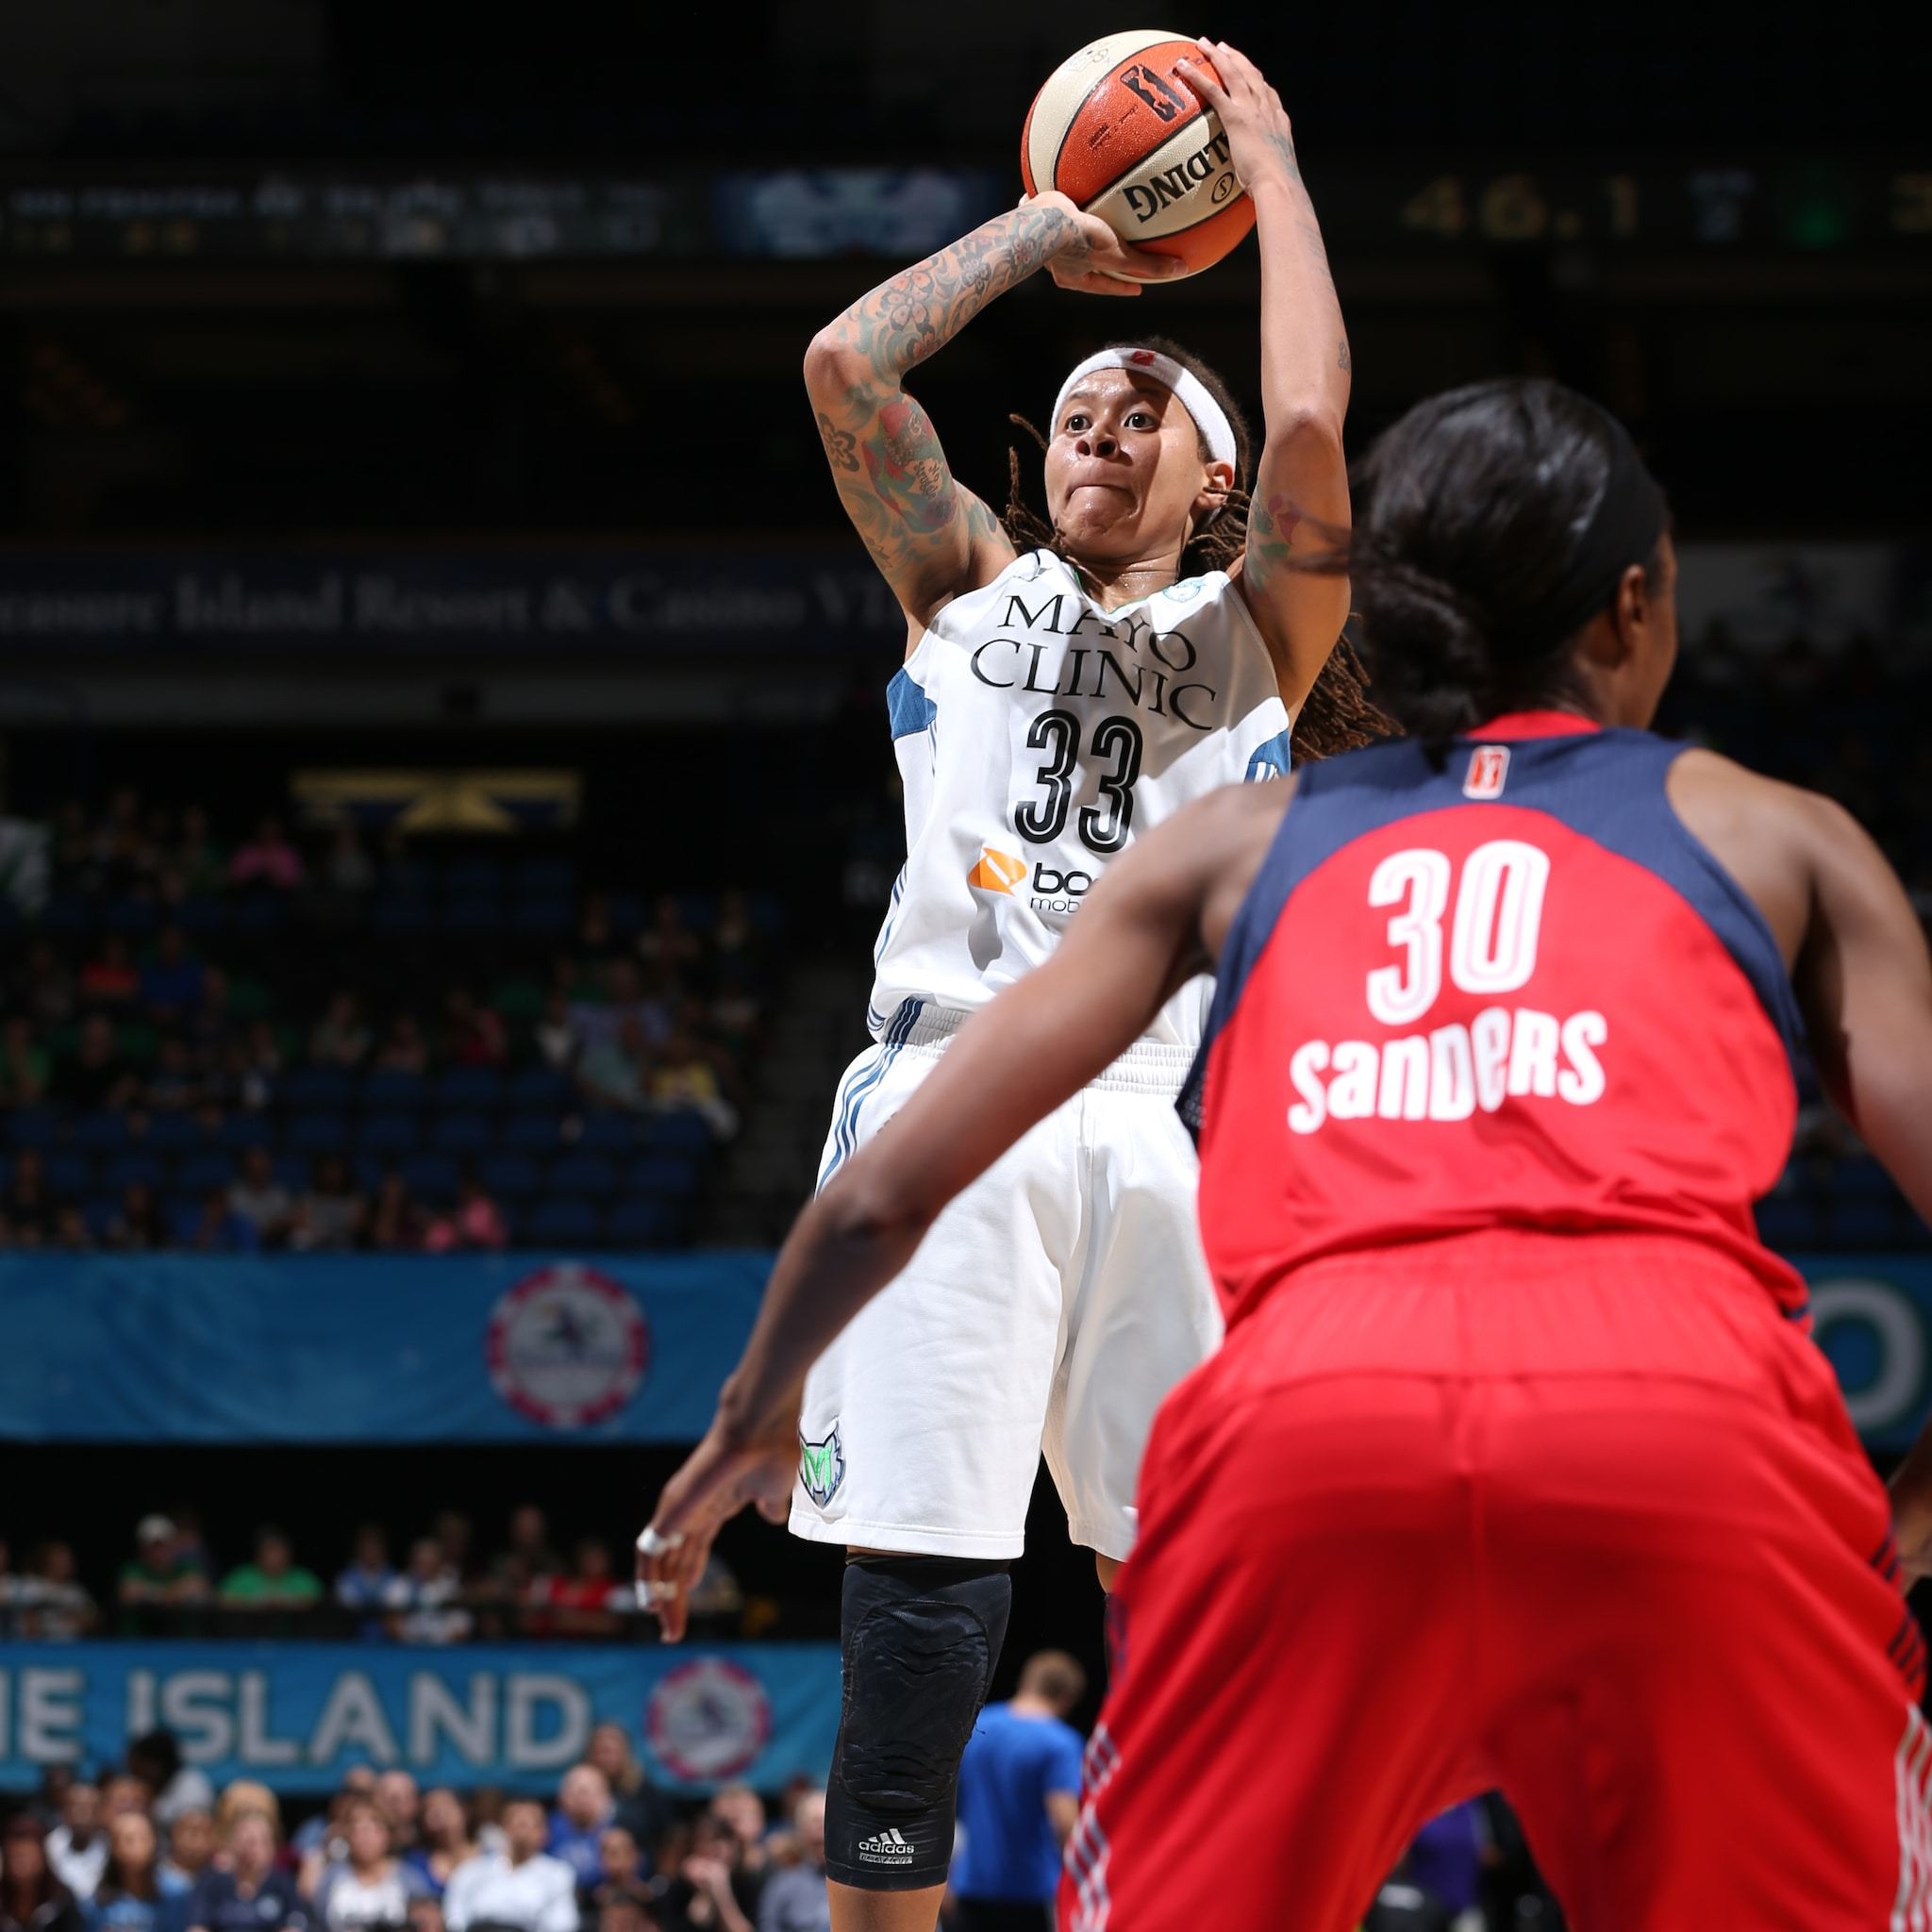 Lynx guard Seimone Augustus, playing in her first home game since a knee injury caused her to miss a month, played well for Minnesota, finishing with  11 points and two rebounds in Minnesota's 79-61 loss to the Washington Mystics.